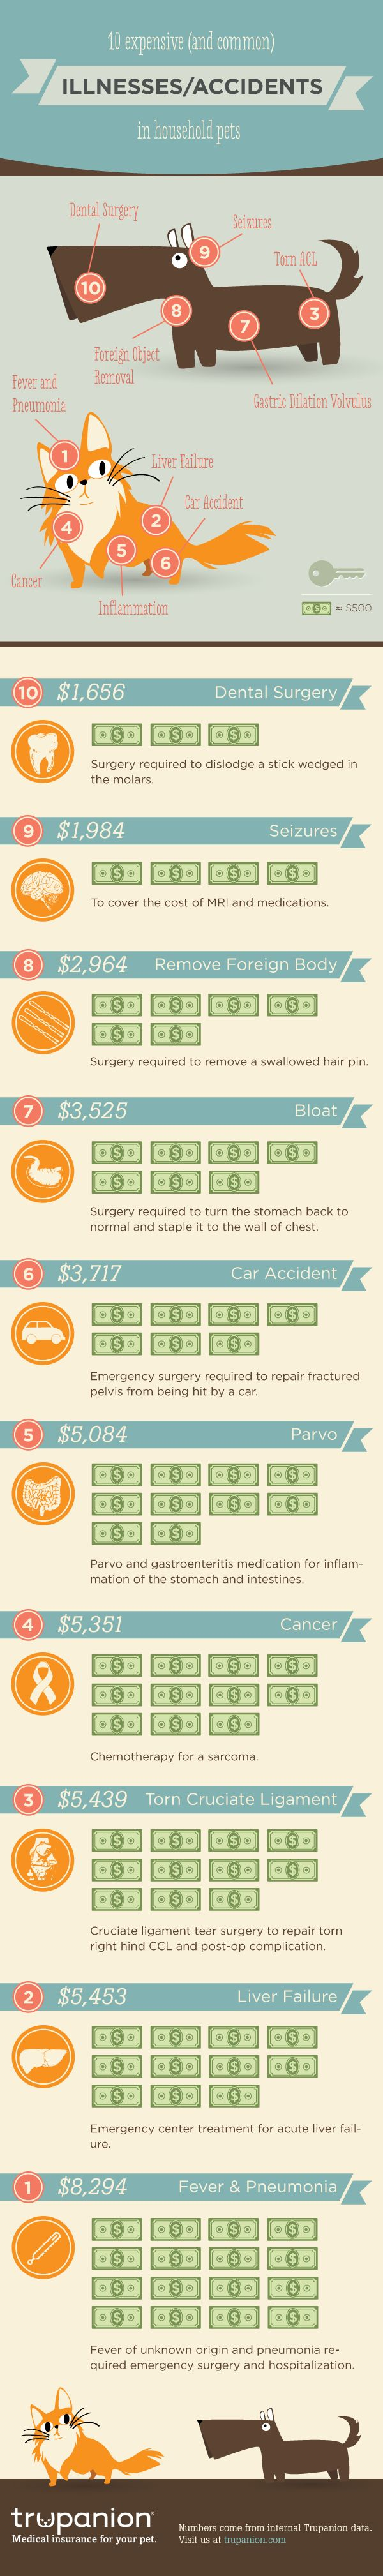 Pet Injuries infographic1 10 Common And Expensive Pet Injuries (Infographics) #6 OMG -dang that is pretty freaking accurate!  Amazing what a DH will pay out of guilt!!